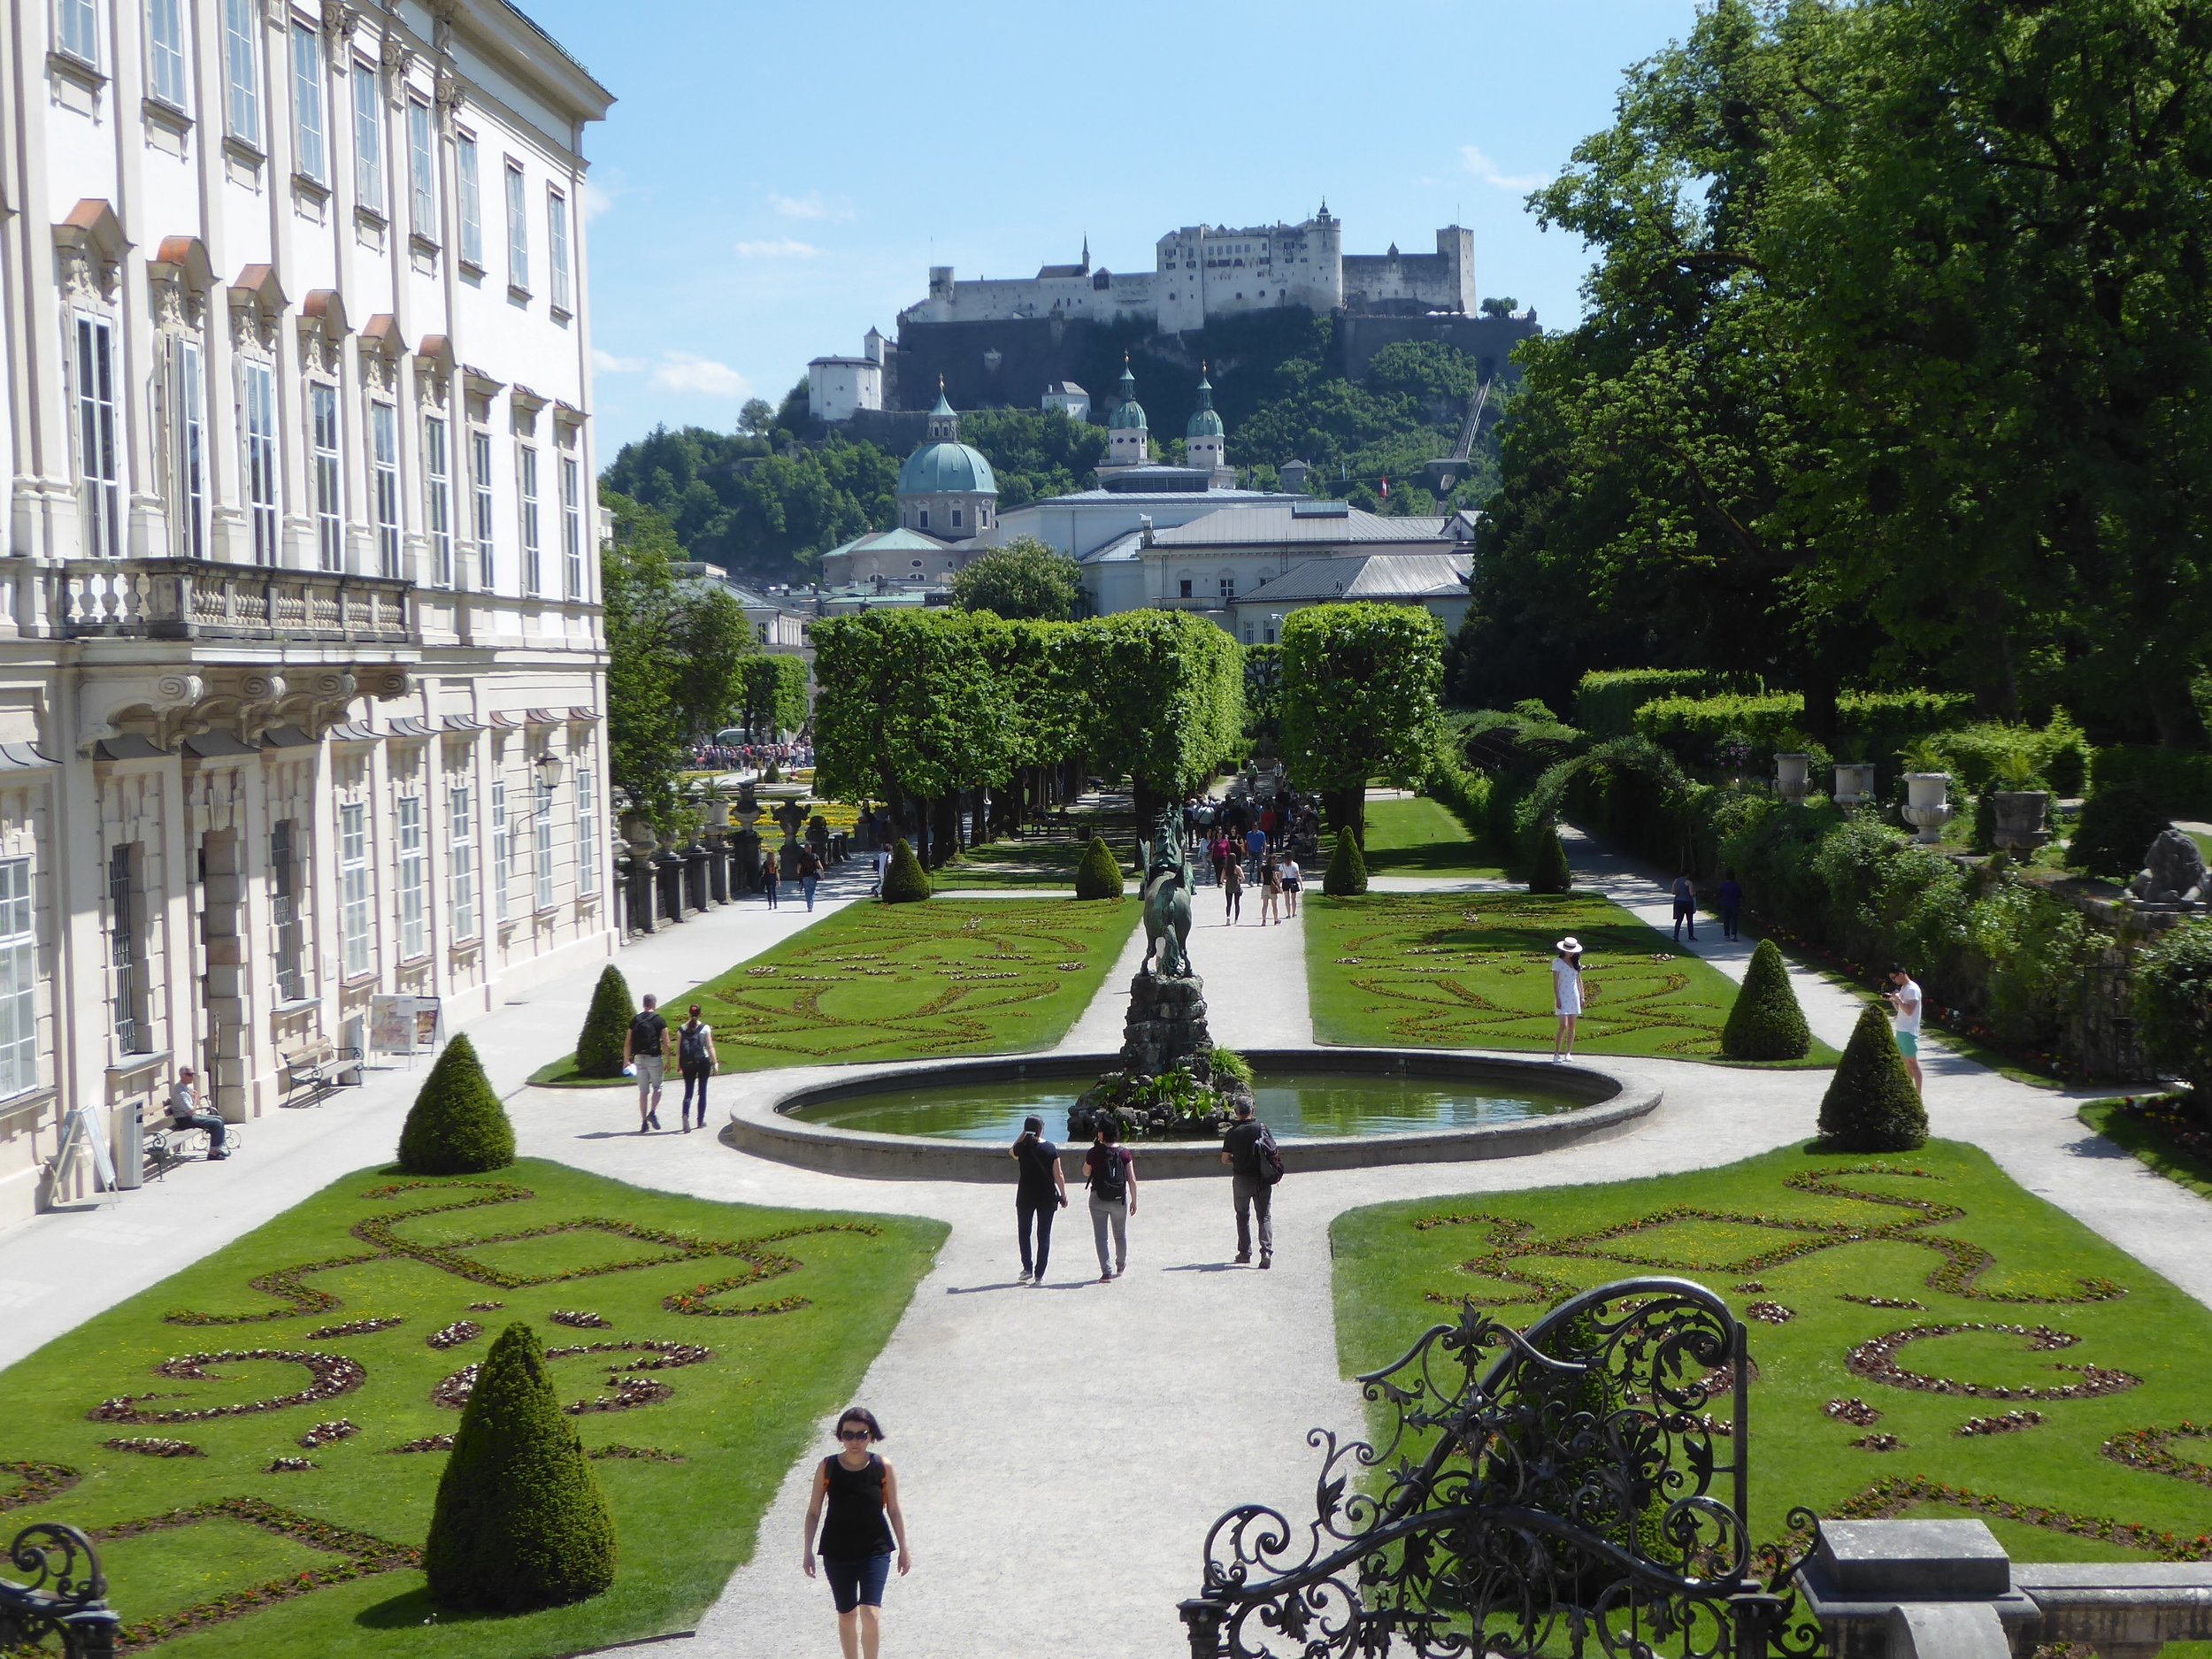 salzburg from the Mirabell gardens.